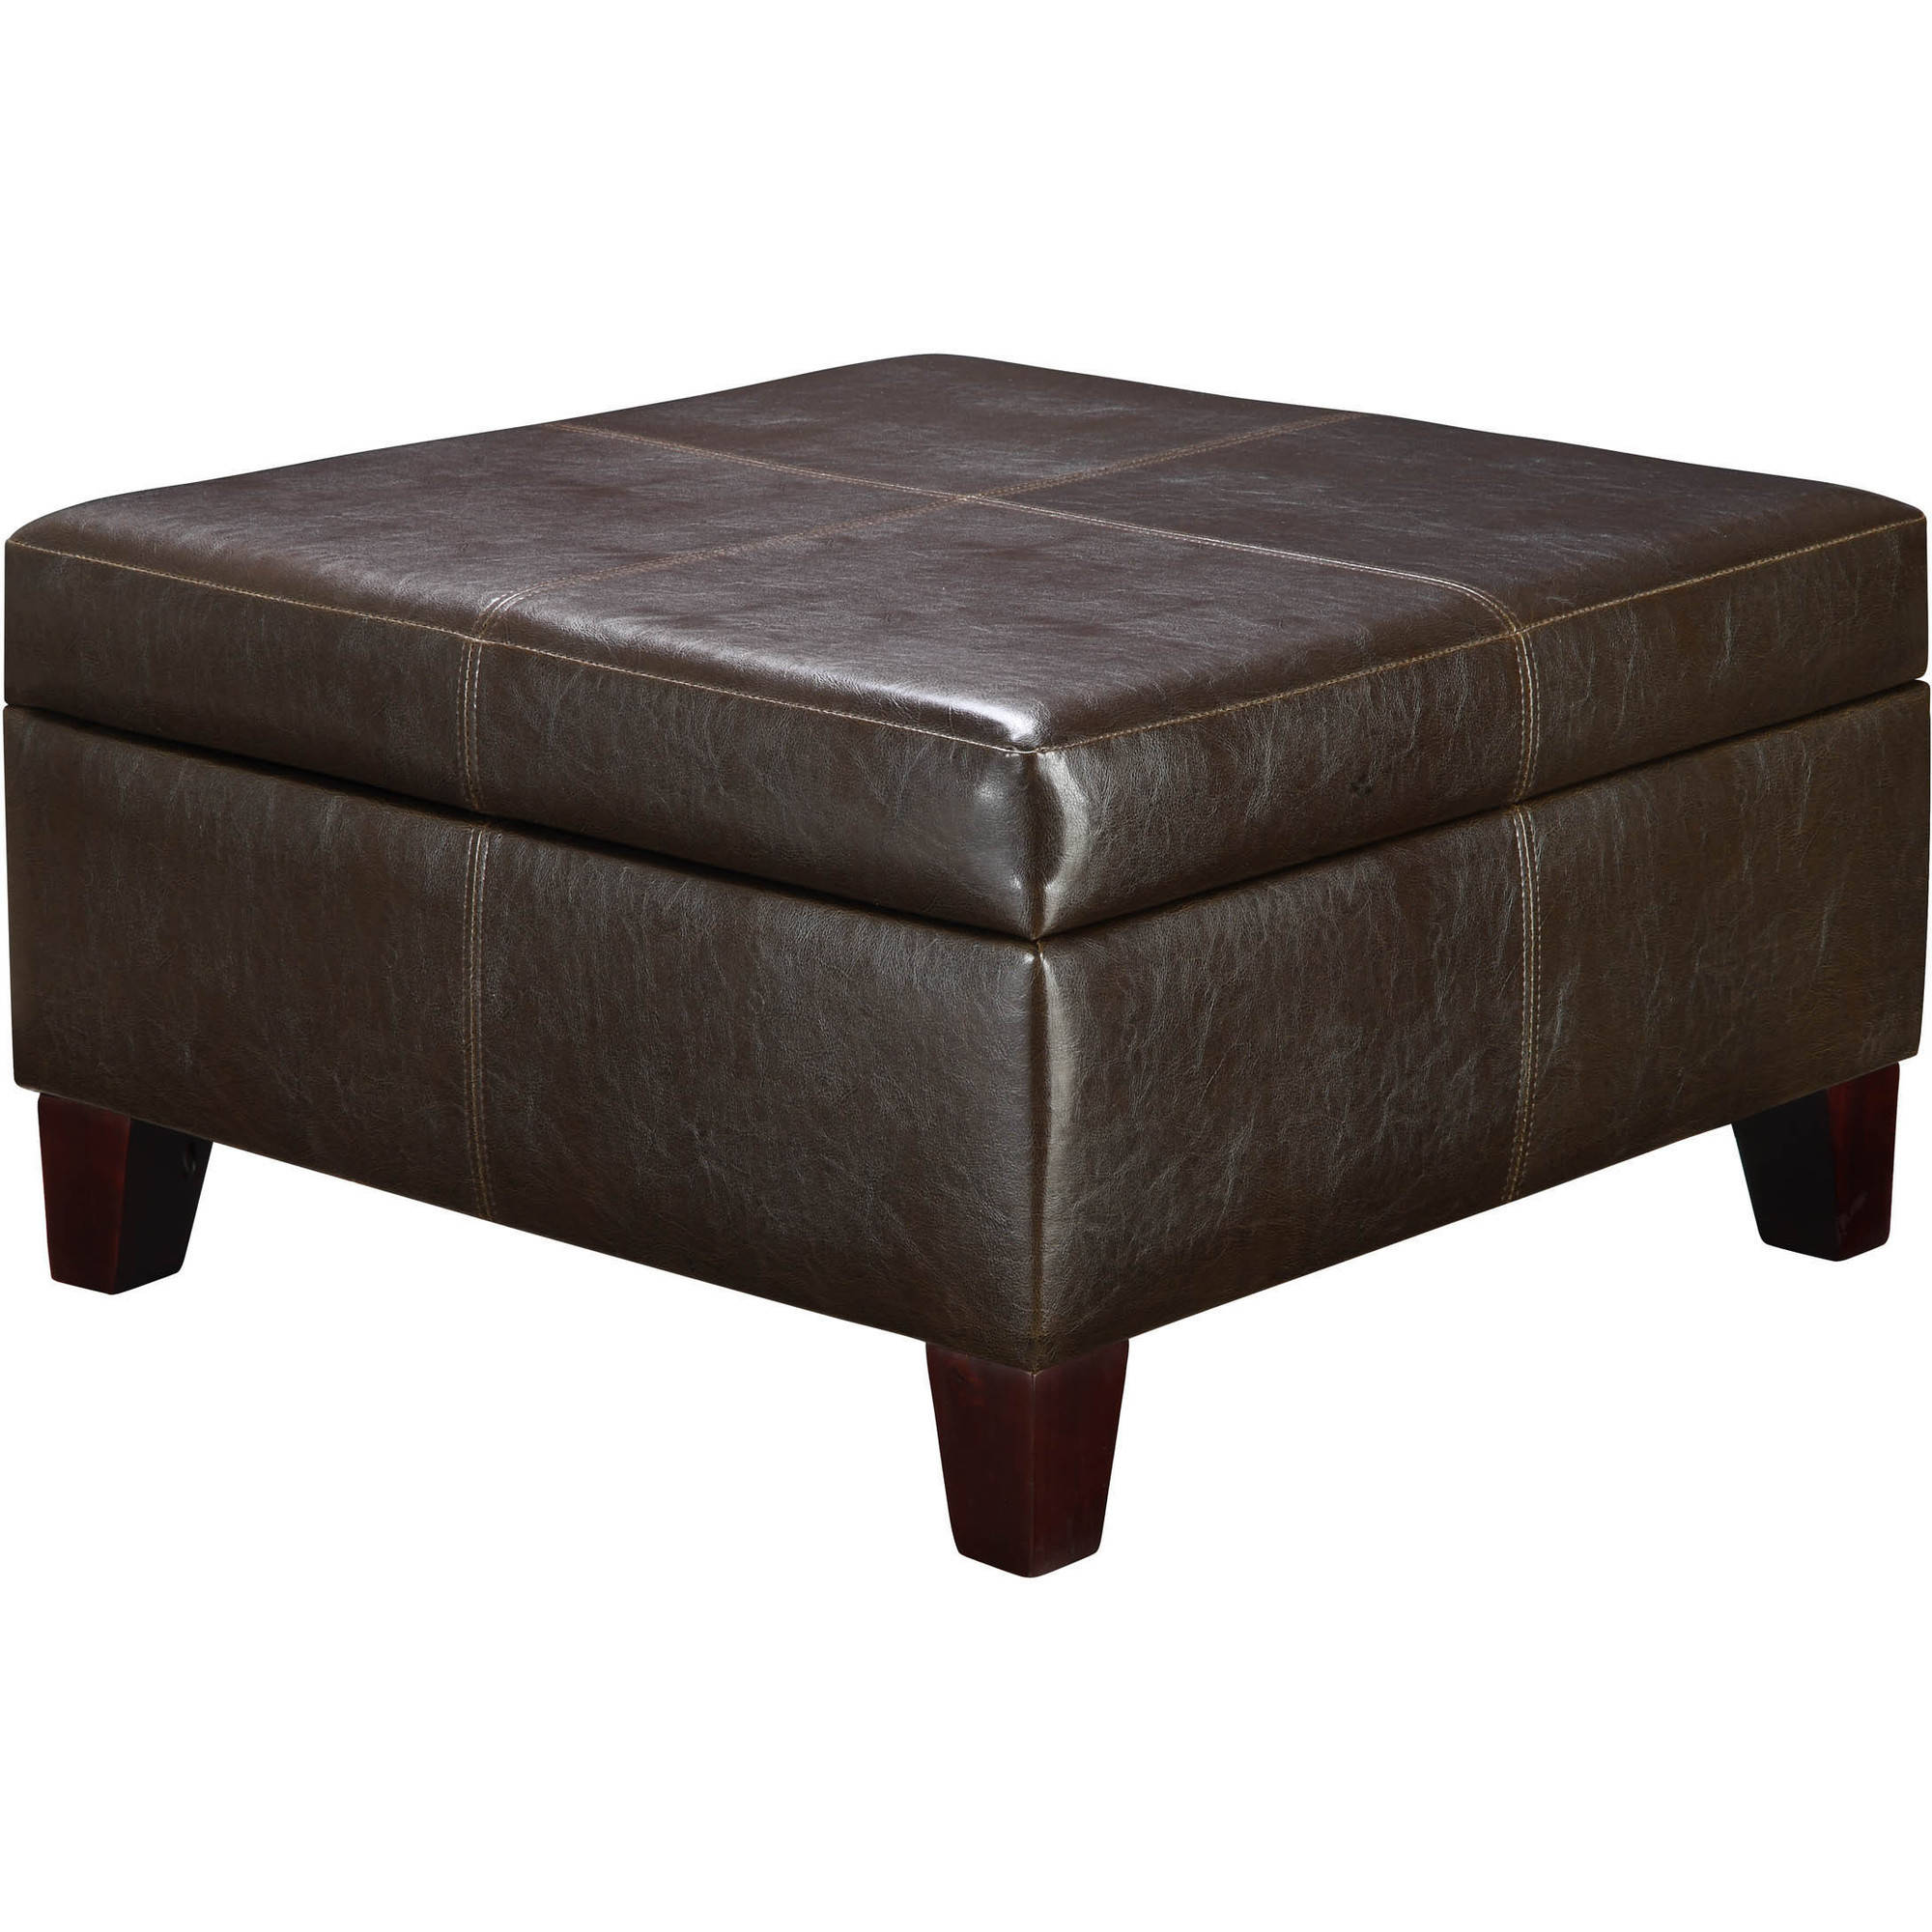 ottomans & poufs : living room furniture - walmart - walmart